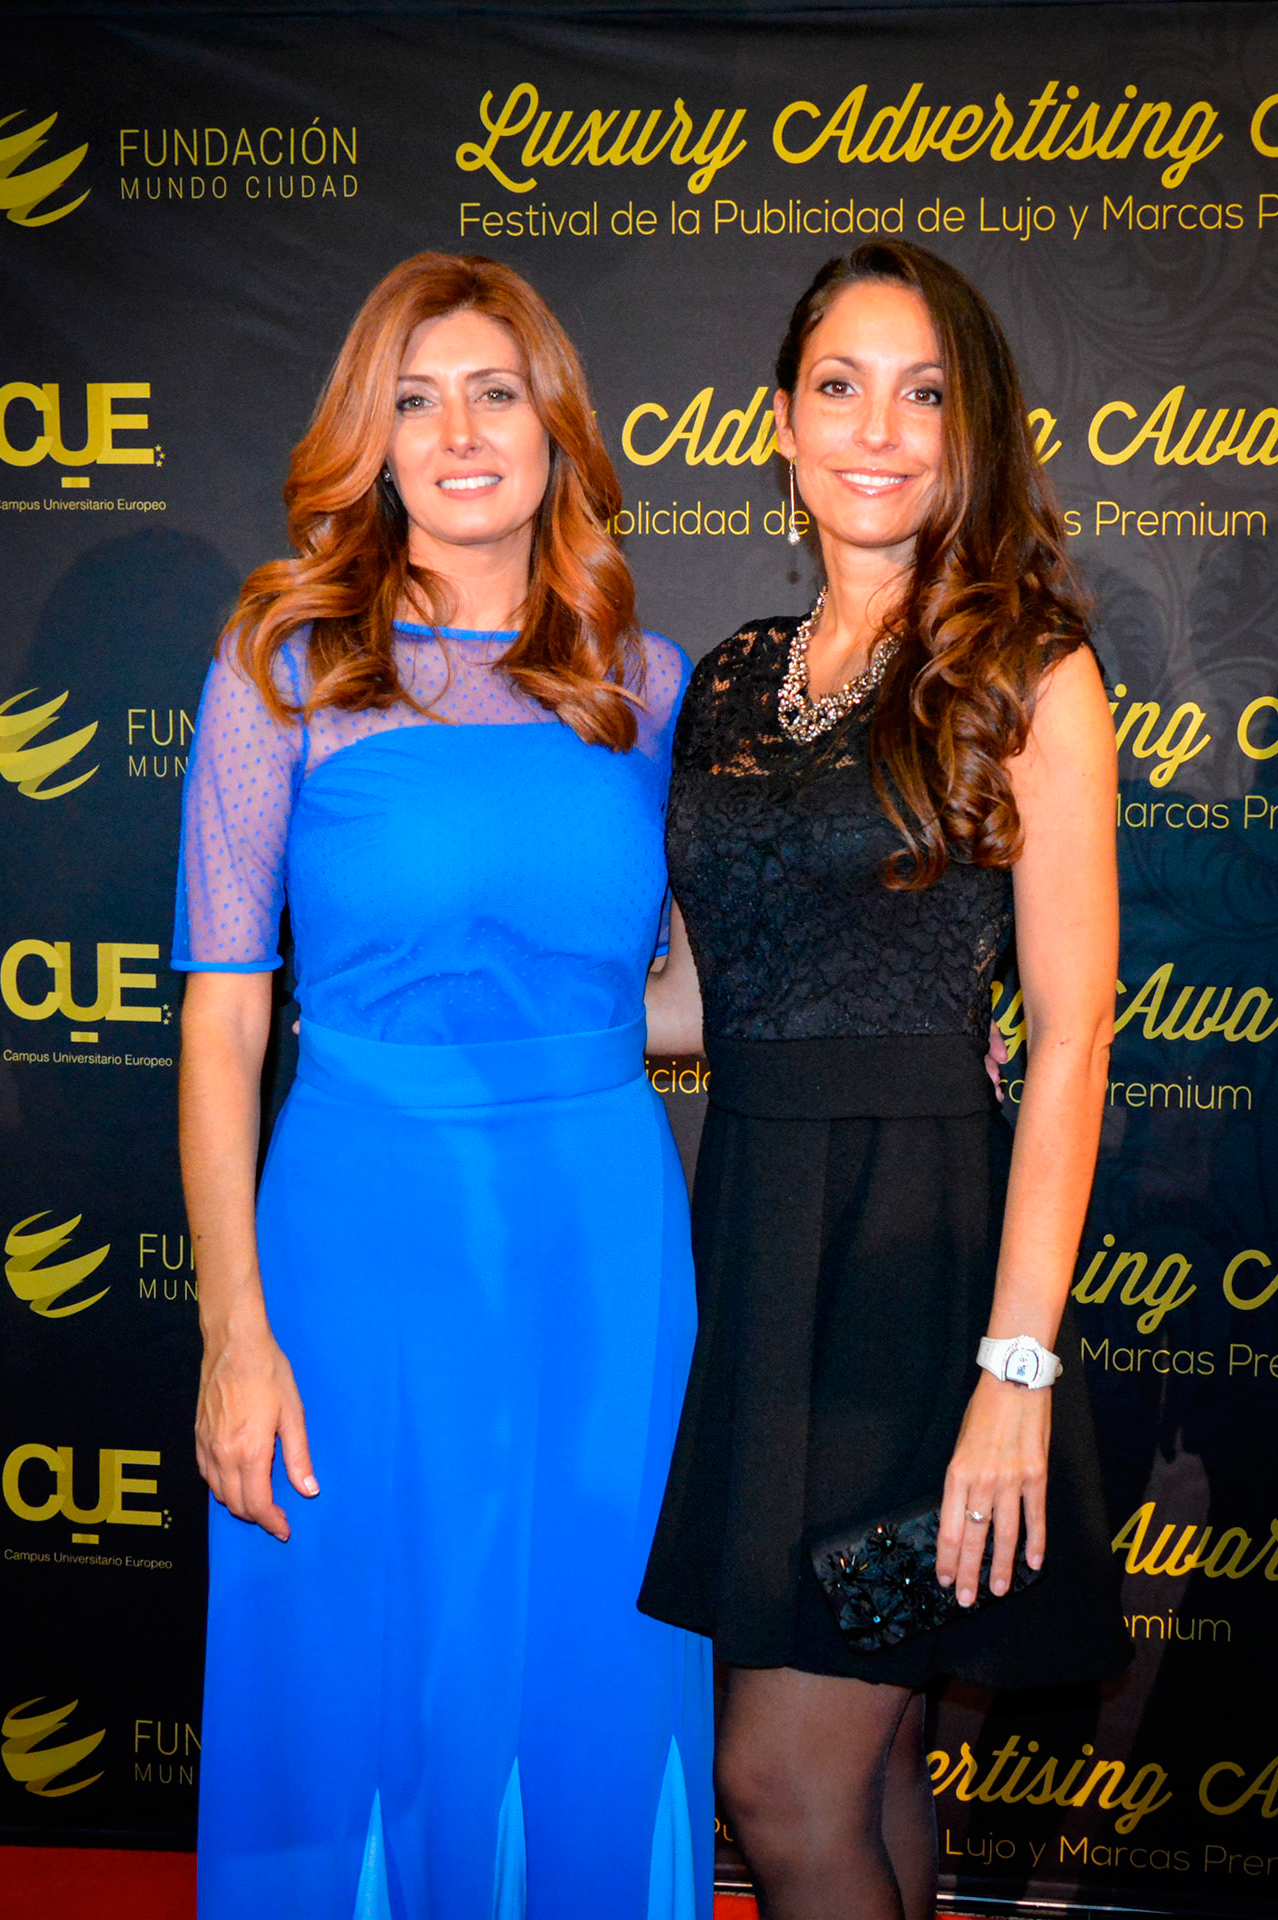 Ariana & Patricia Betancort at Luxury Advertising Awards - www.arianasoffici.com